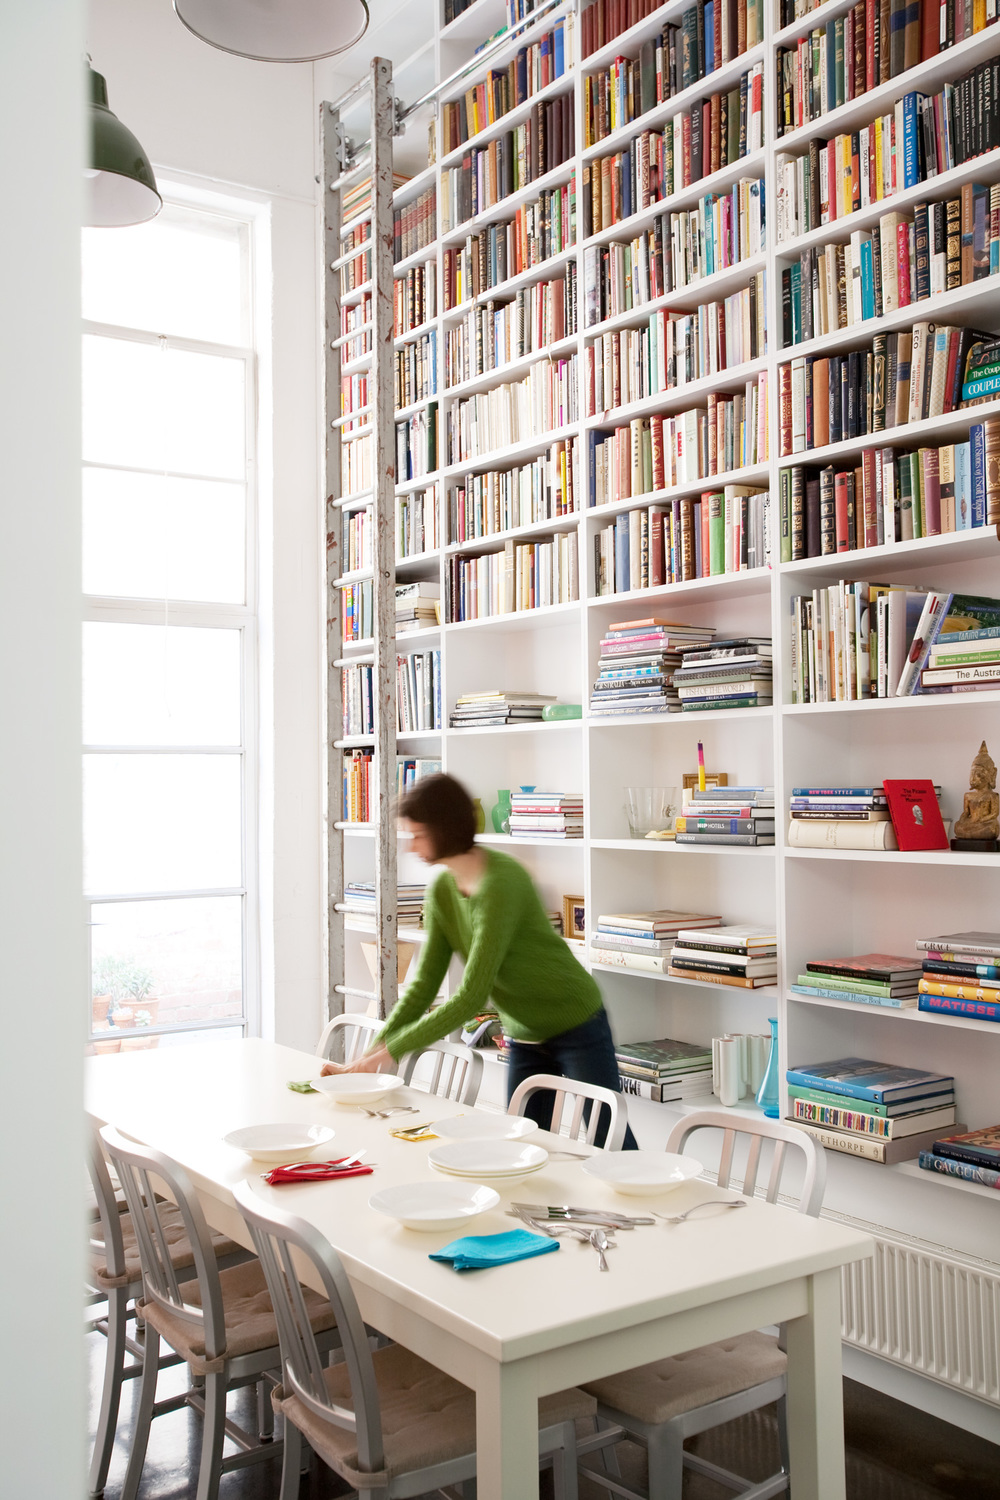 casual-meals-area-white-dining-table-chairs-floor-to-ceiling-bookshelf-diane-bergeron.jpg